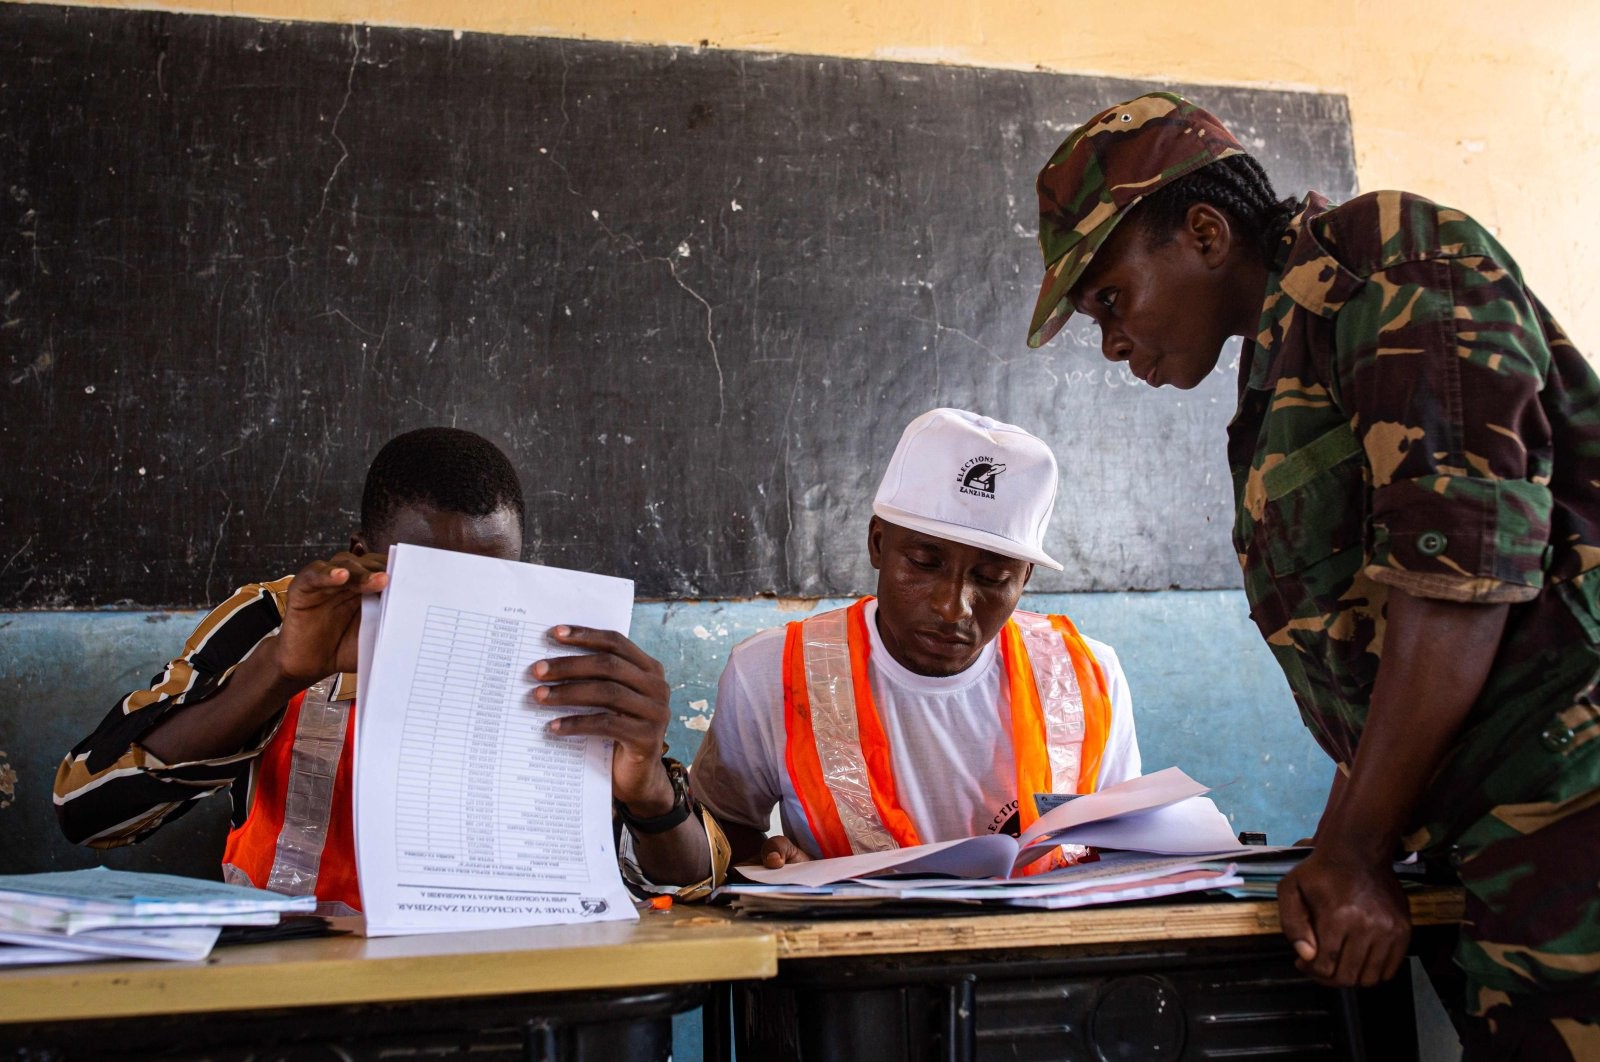 Zanzibar Electoral Commission (ZEC) officials check a security forces officer's ID at Mtupepo Primary School in Daraja Bovu, Zanzibar, Oct. 27, 2020. (AFP Photo)